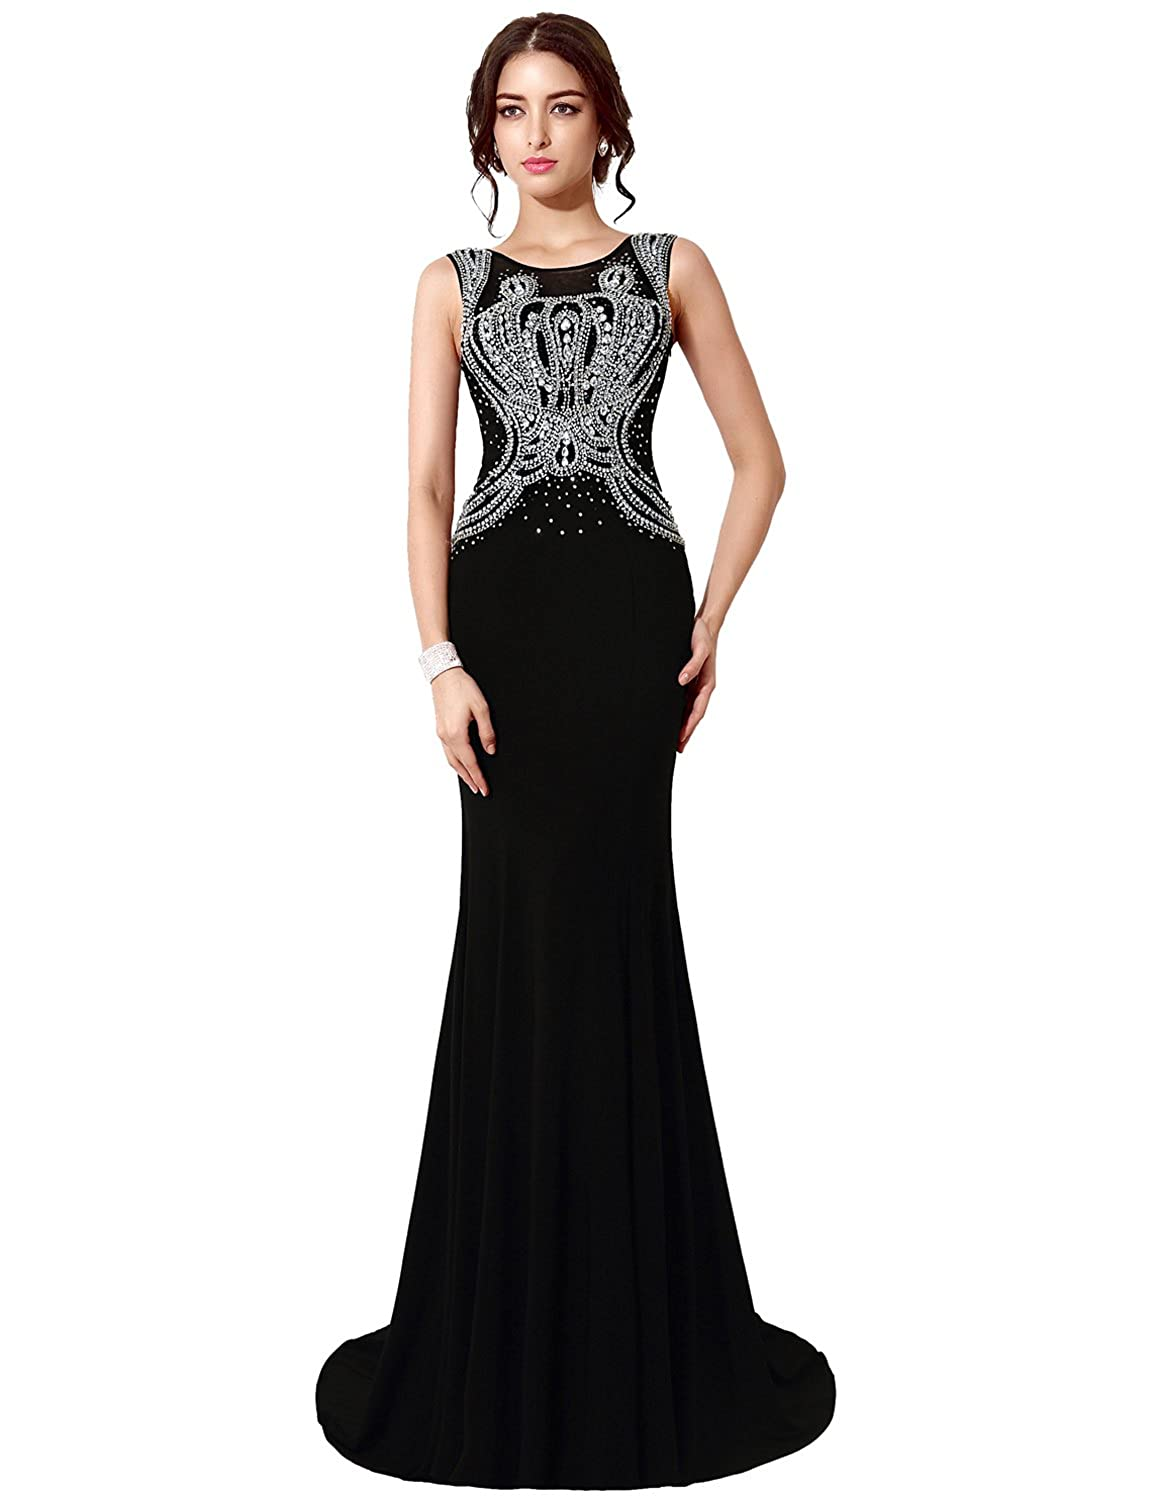 Favebridal Women's Long Evening Formal Dresses XU034